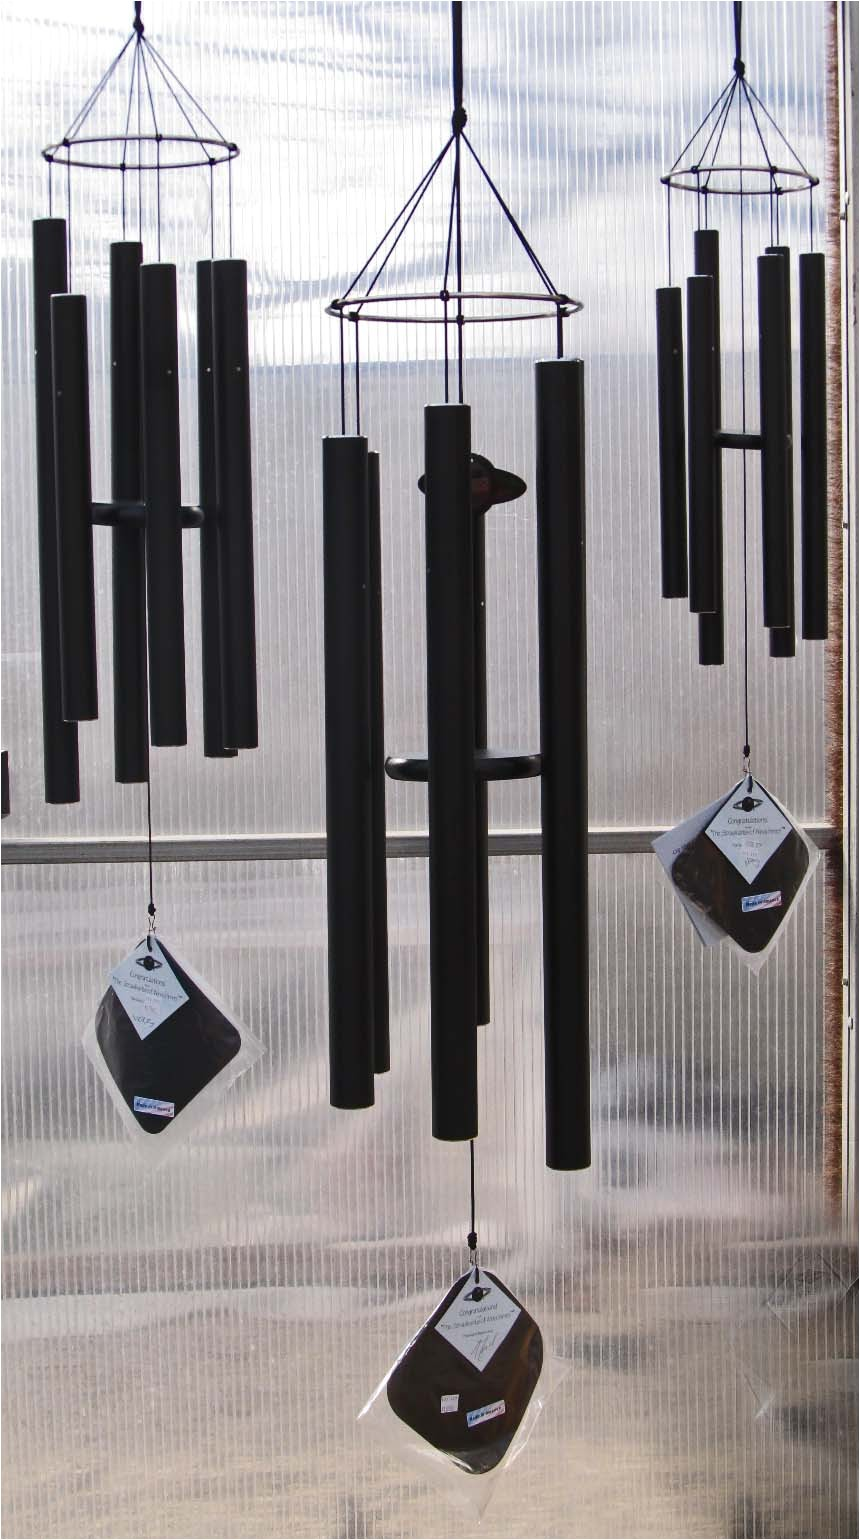 wind chime music of the spheres